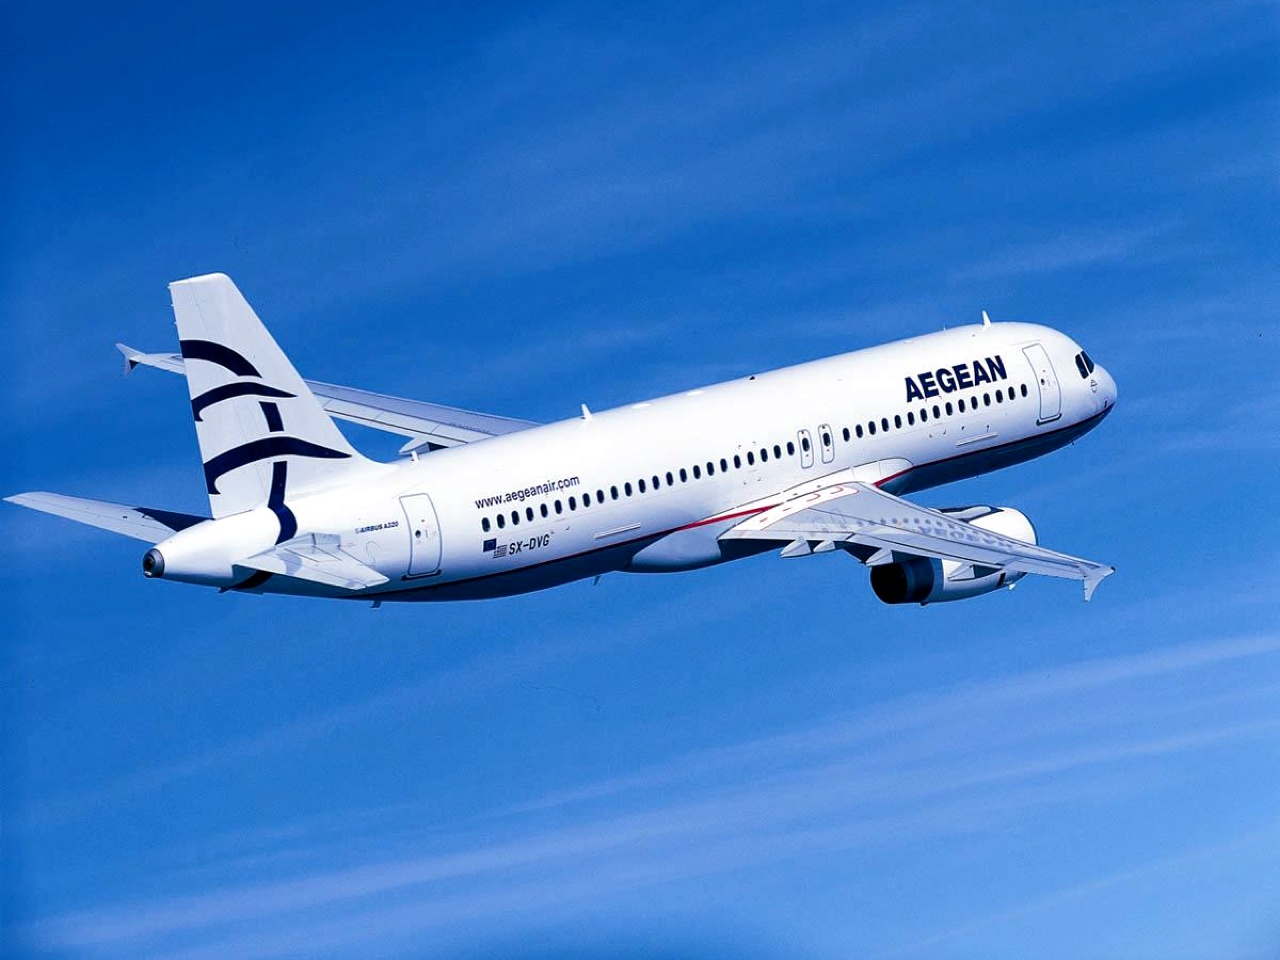 AEGEAN Wins, Once Again, Best Regional Airline in Europe Award from Skytrax